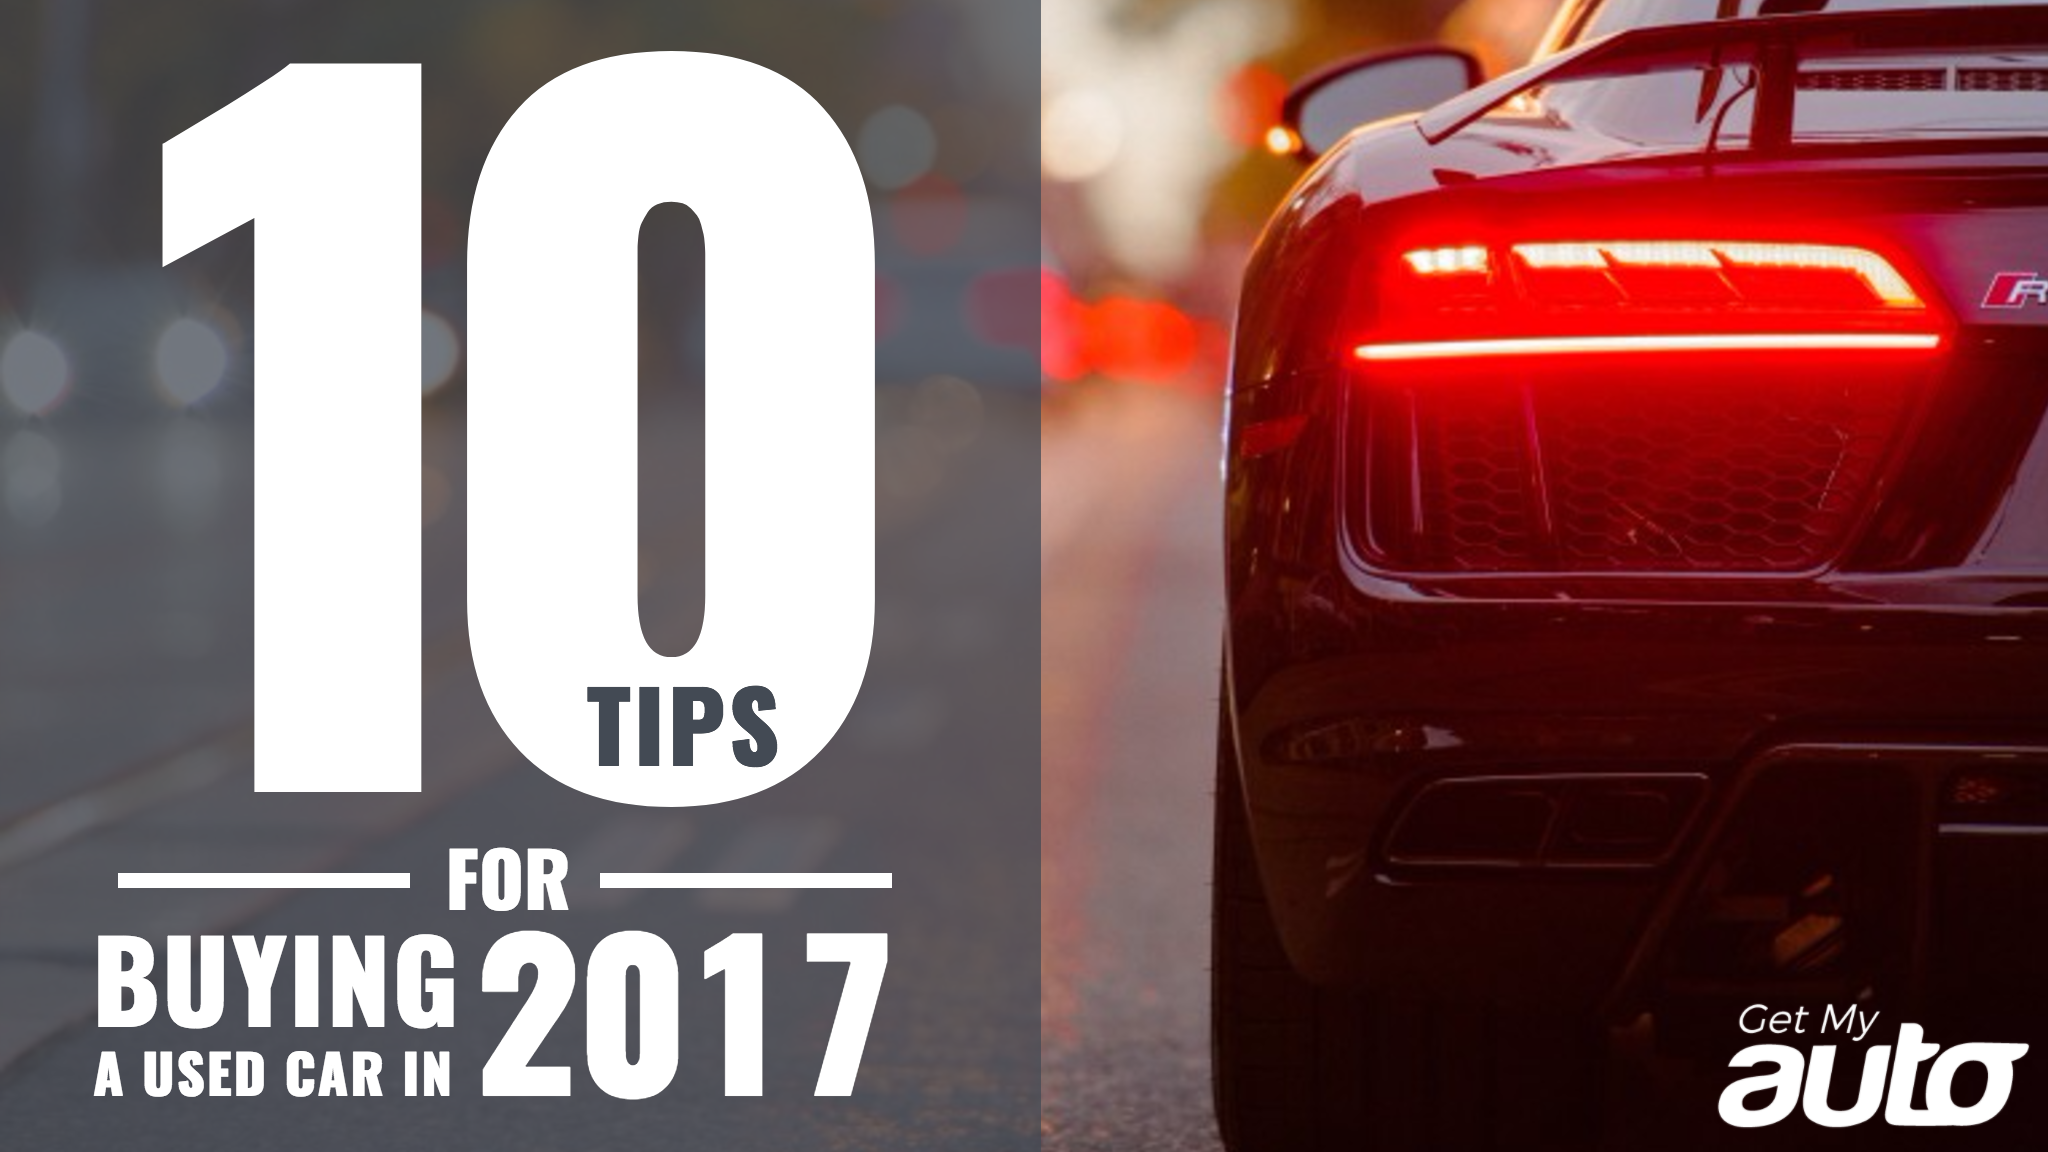 10 10 tips for car buying - 10 10 Tips For Car Buying 3